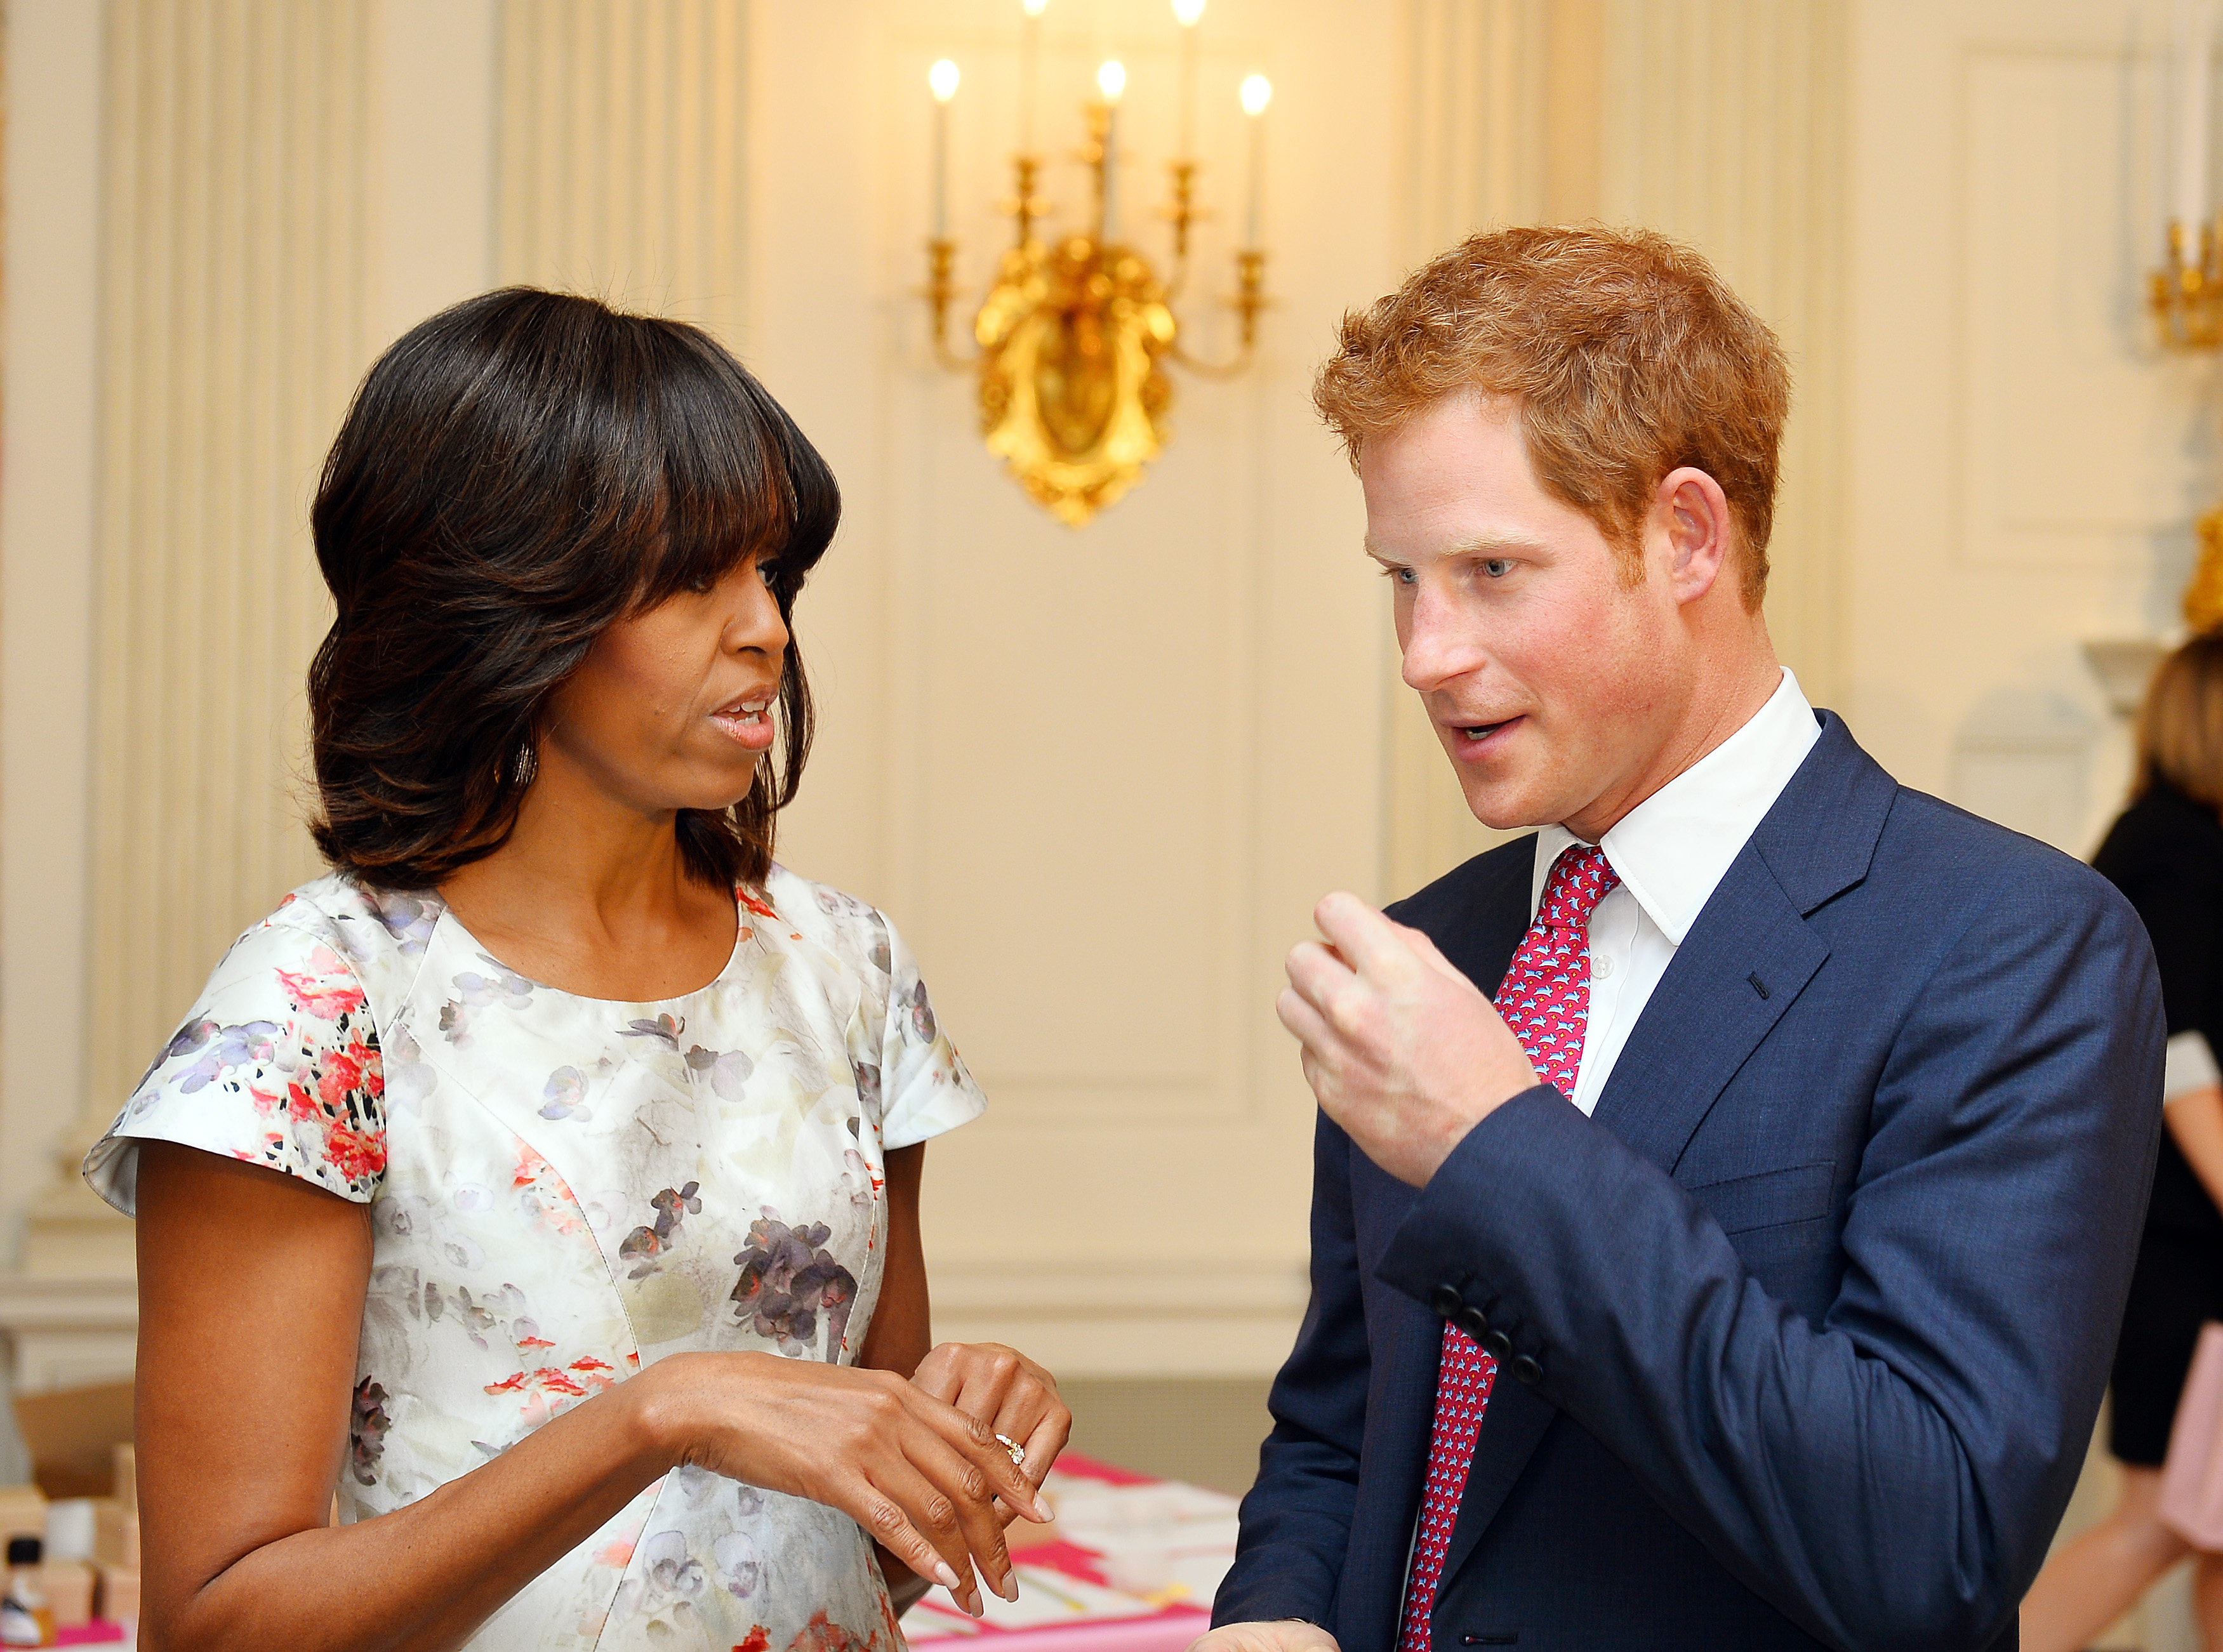 Prince Harry speaks with First Lady Michelle Obama during the first day of his visit to the United States on May 9, 2013 in Washington, D.C.